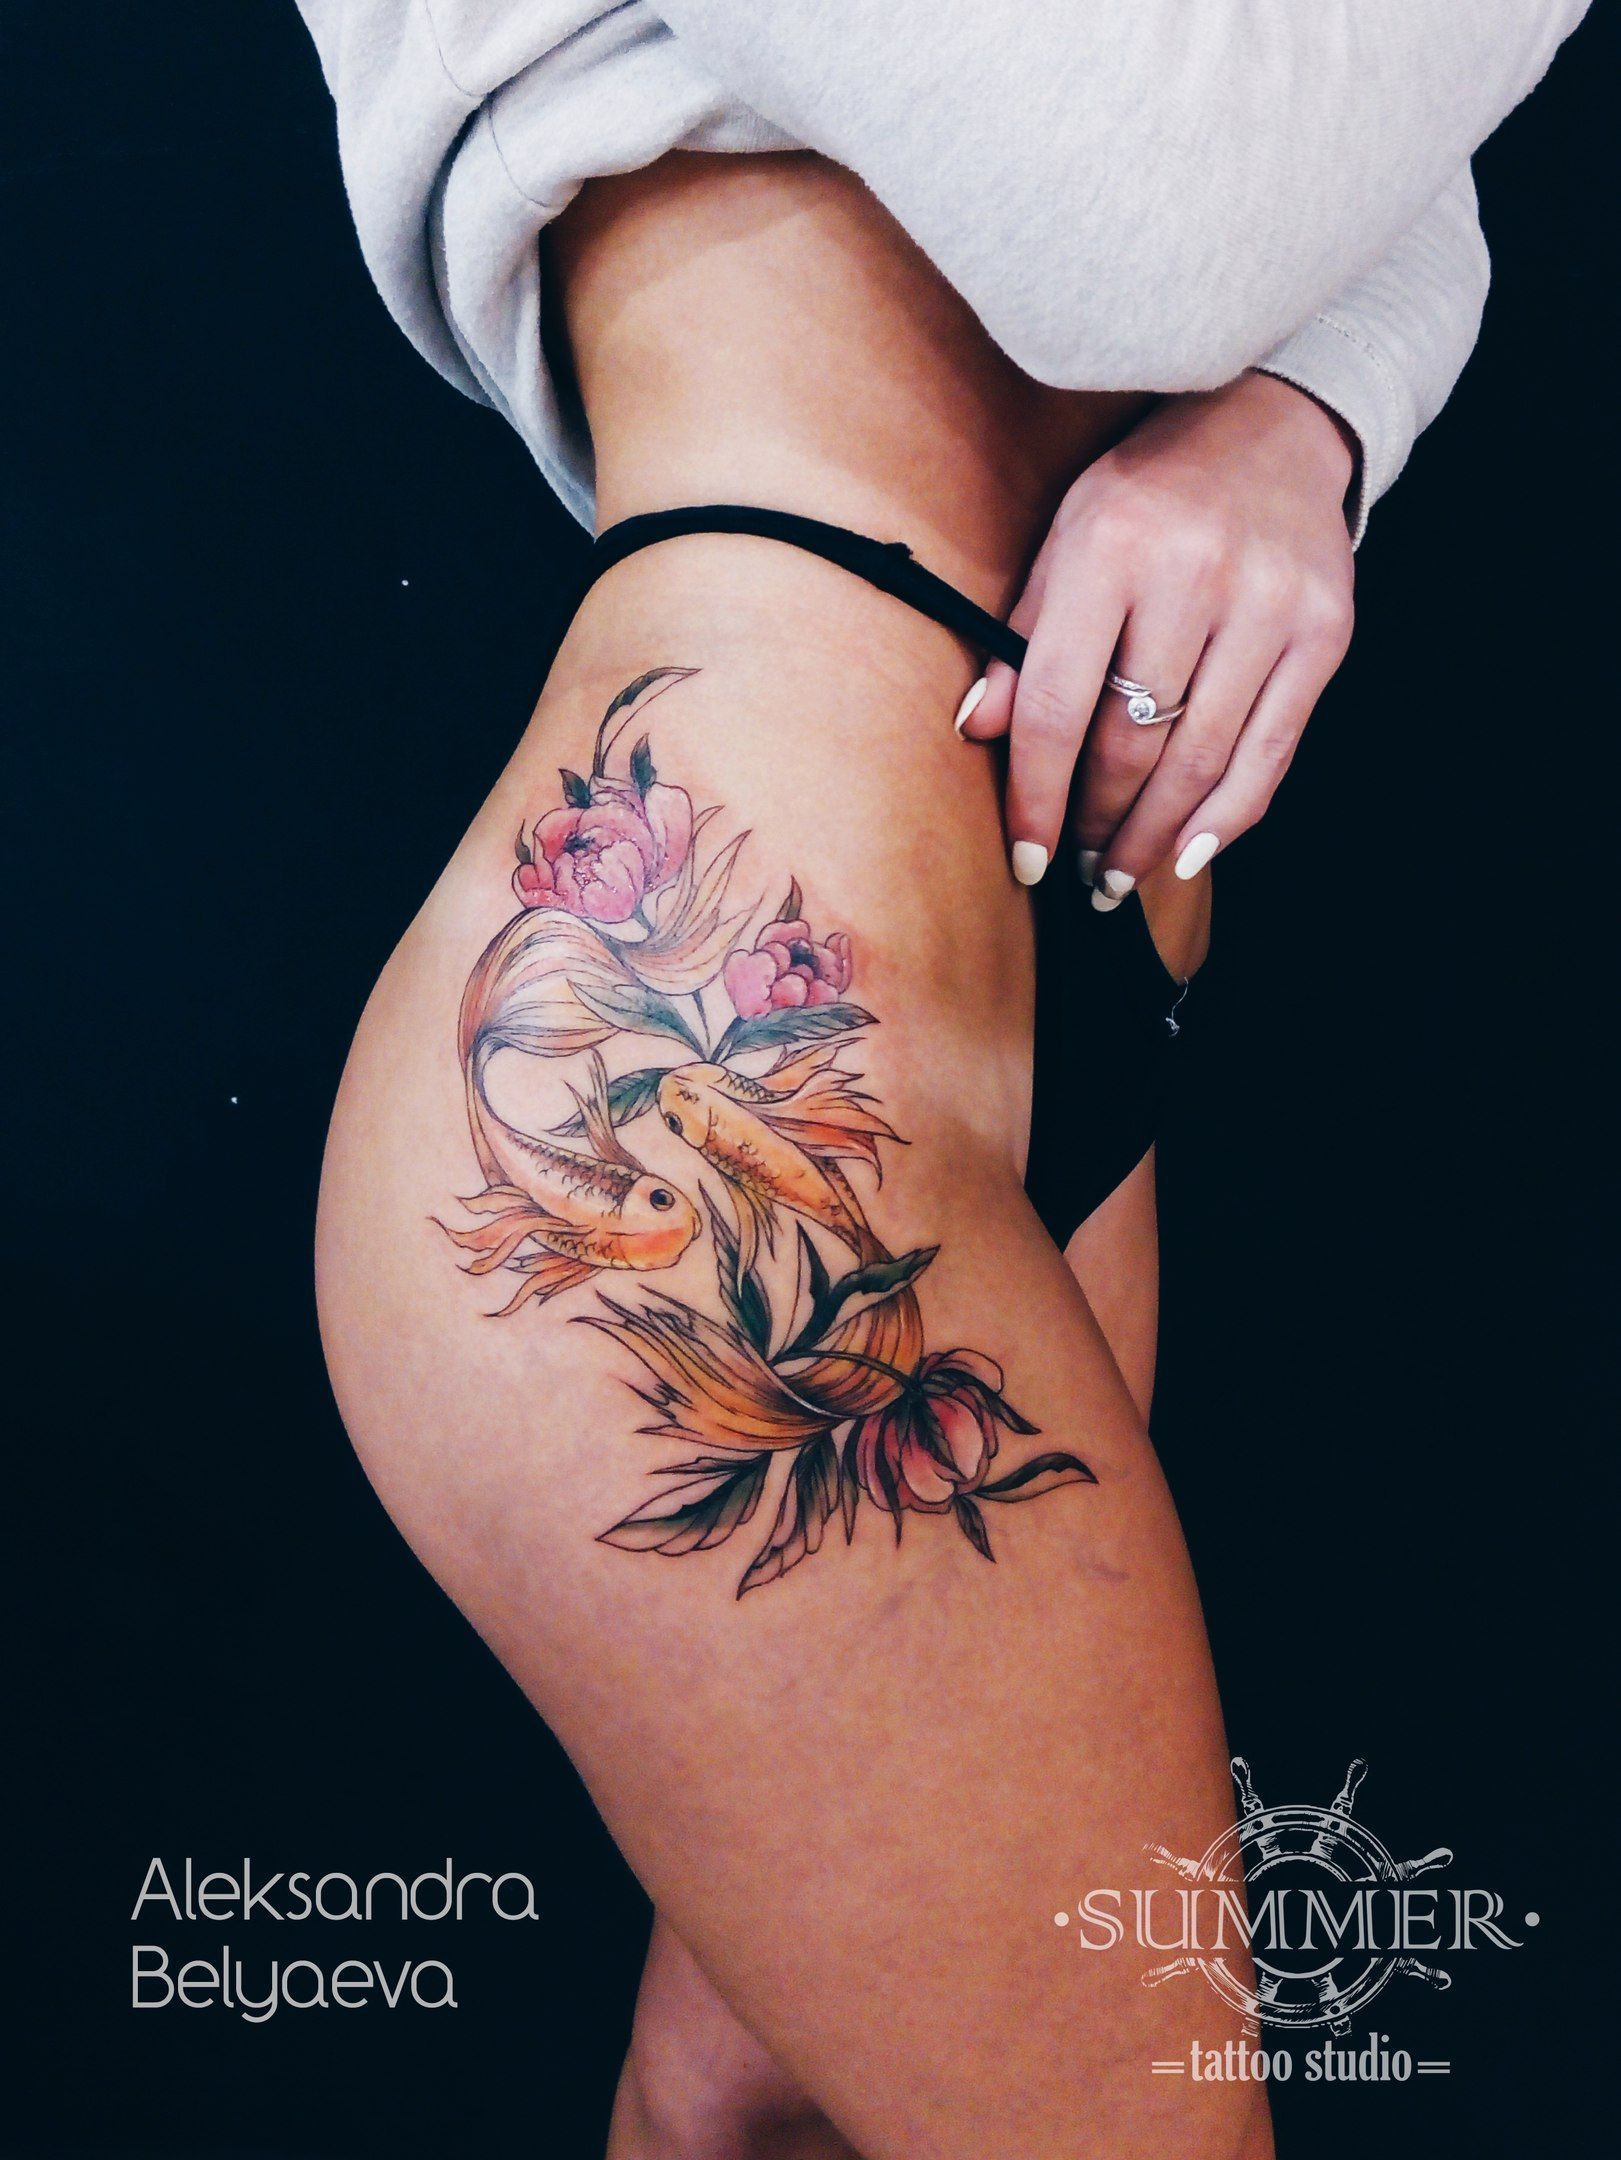 Pin By Madeleine Yost On Tattoos In 2020 Hip Tattoo Designs Flower Thigh Tattoos Thigh Tattoos Women